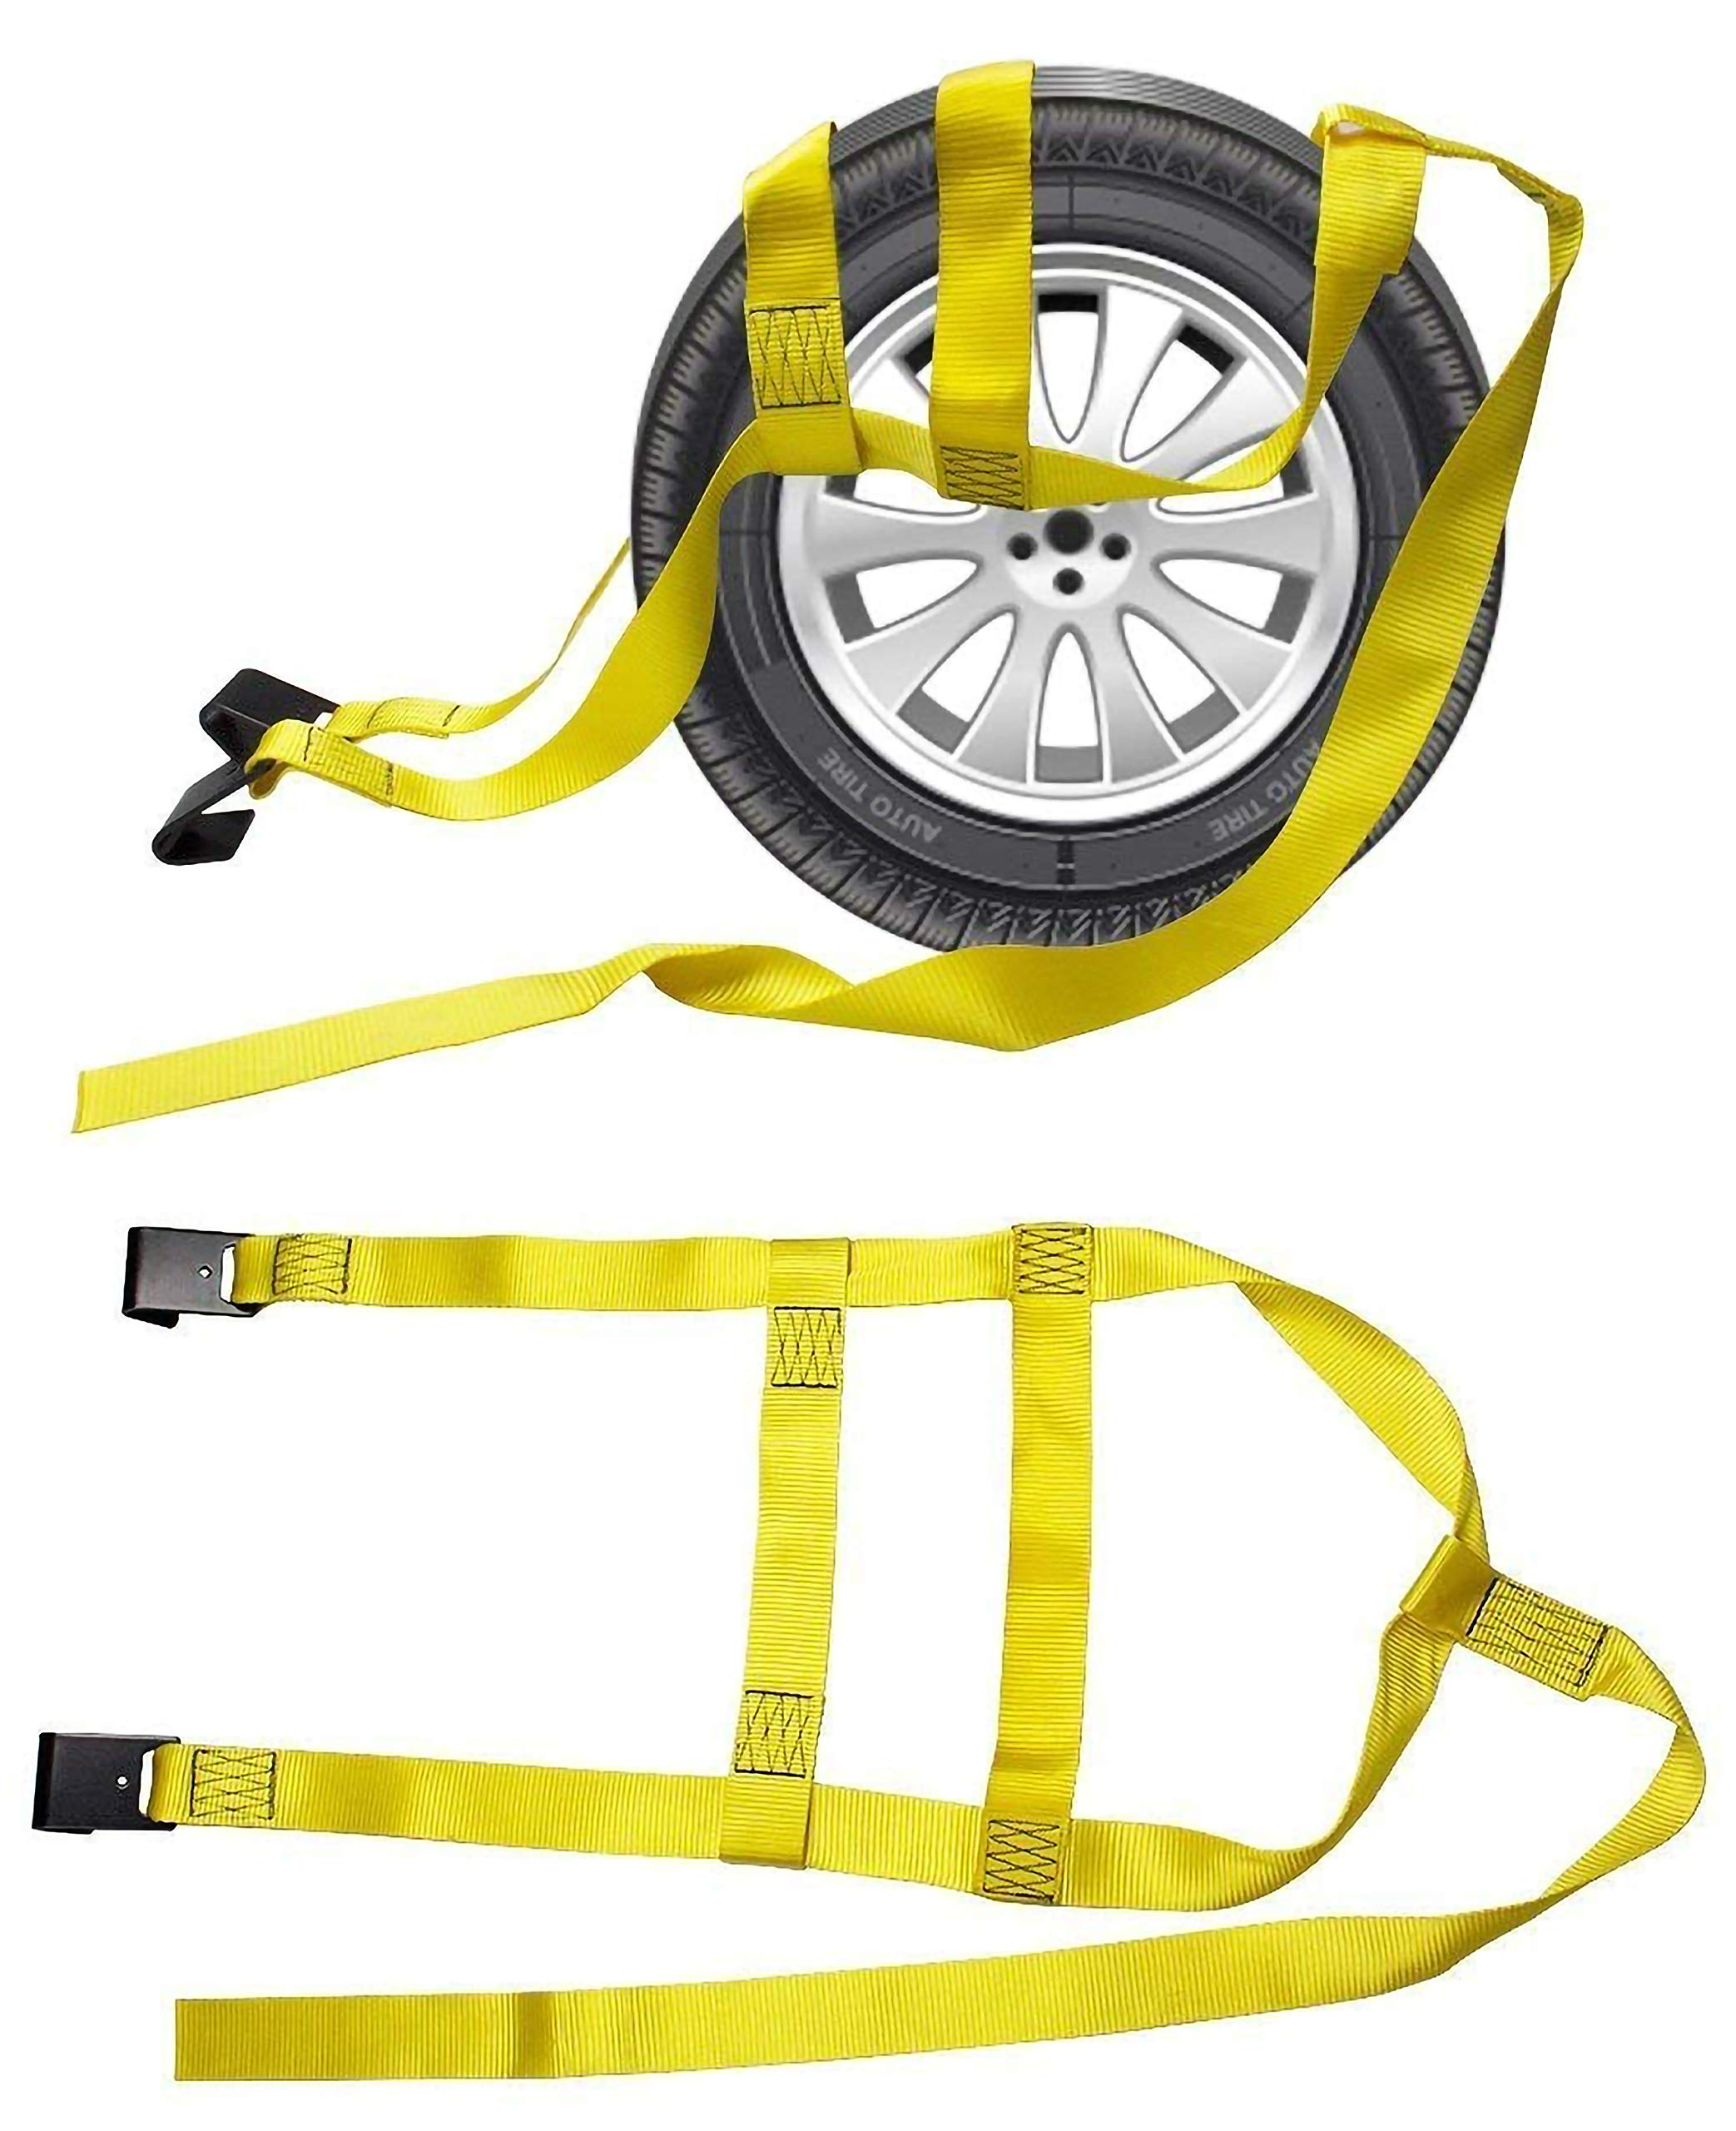 S0T7 New 2X Car Basket Straps Adjustable Tow Dolly DEMCO Wheel Net Set Flat Hook Standard Wheels Fits (13-19 Inches, Yellow) by Noa Store